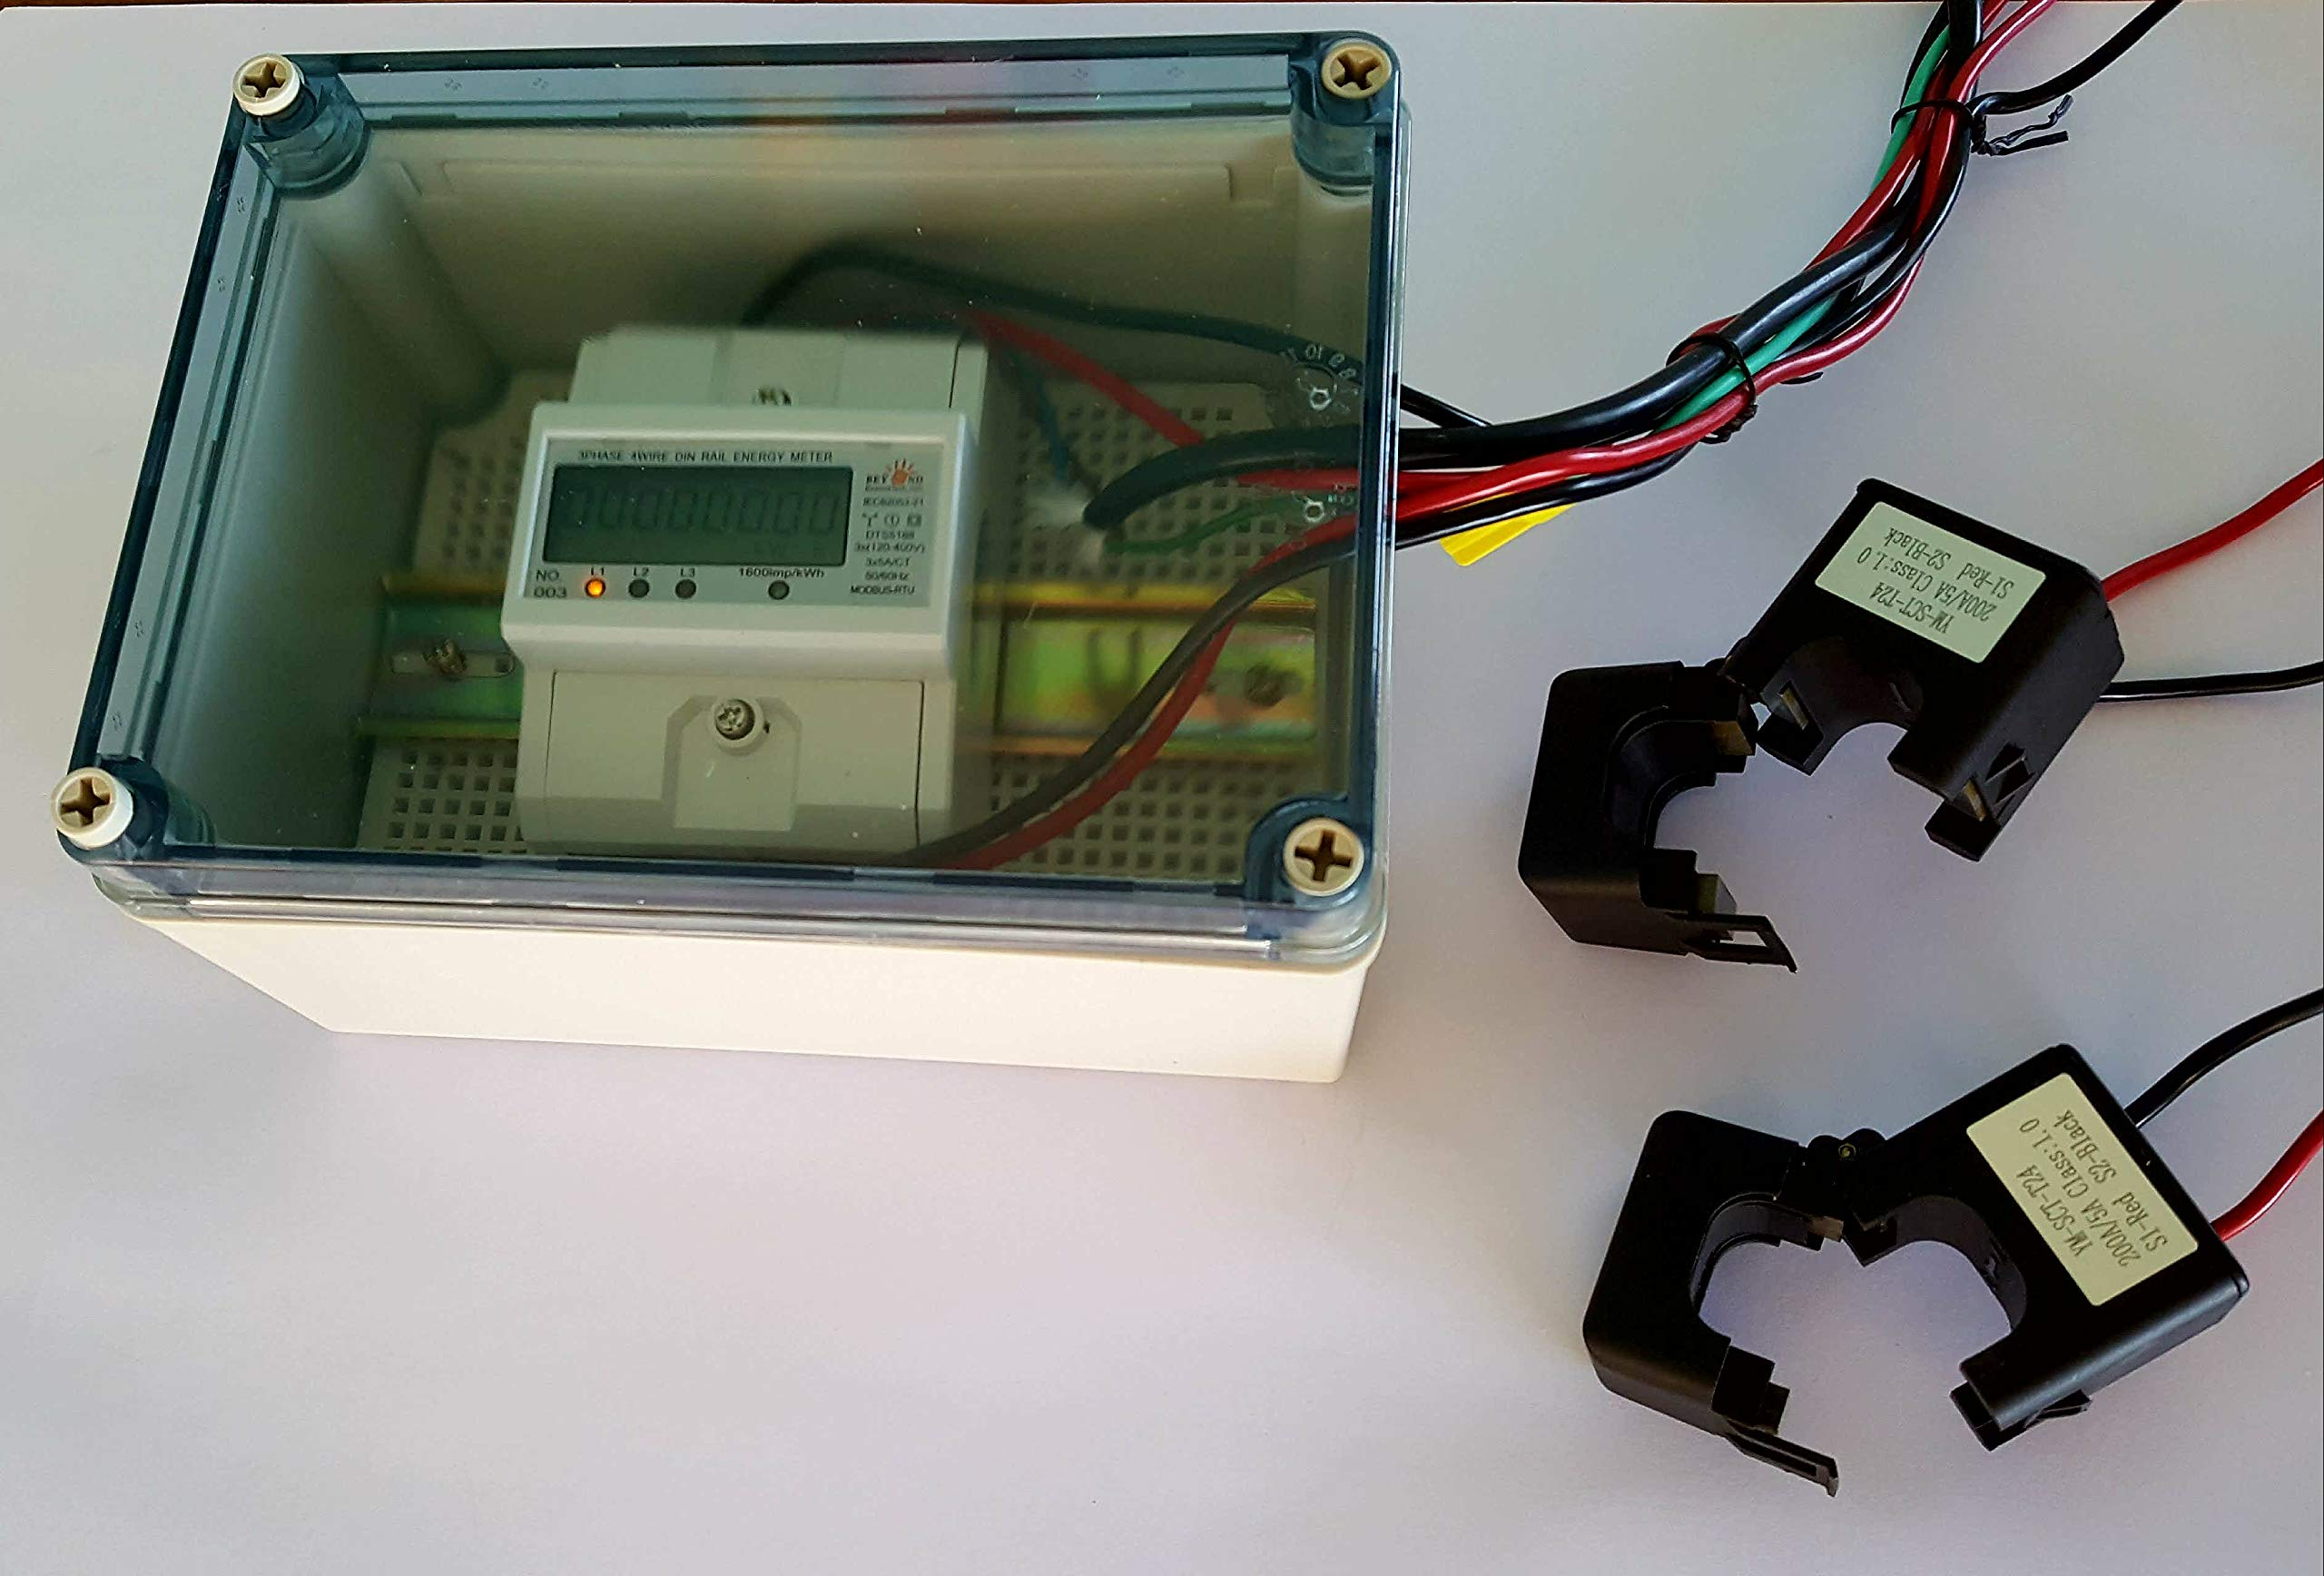 Smart energy meter 1 2 or 3 phase 120V/480V. 2x200:5 Amps included by BeyondTech.com (Image #5)